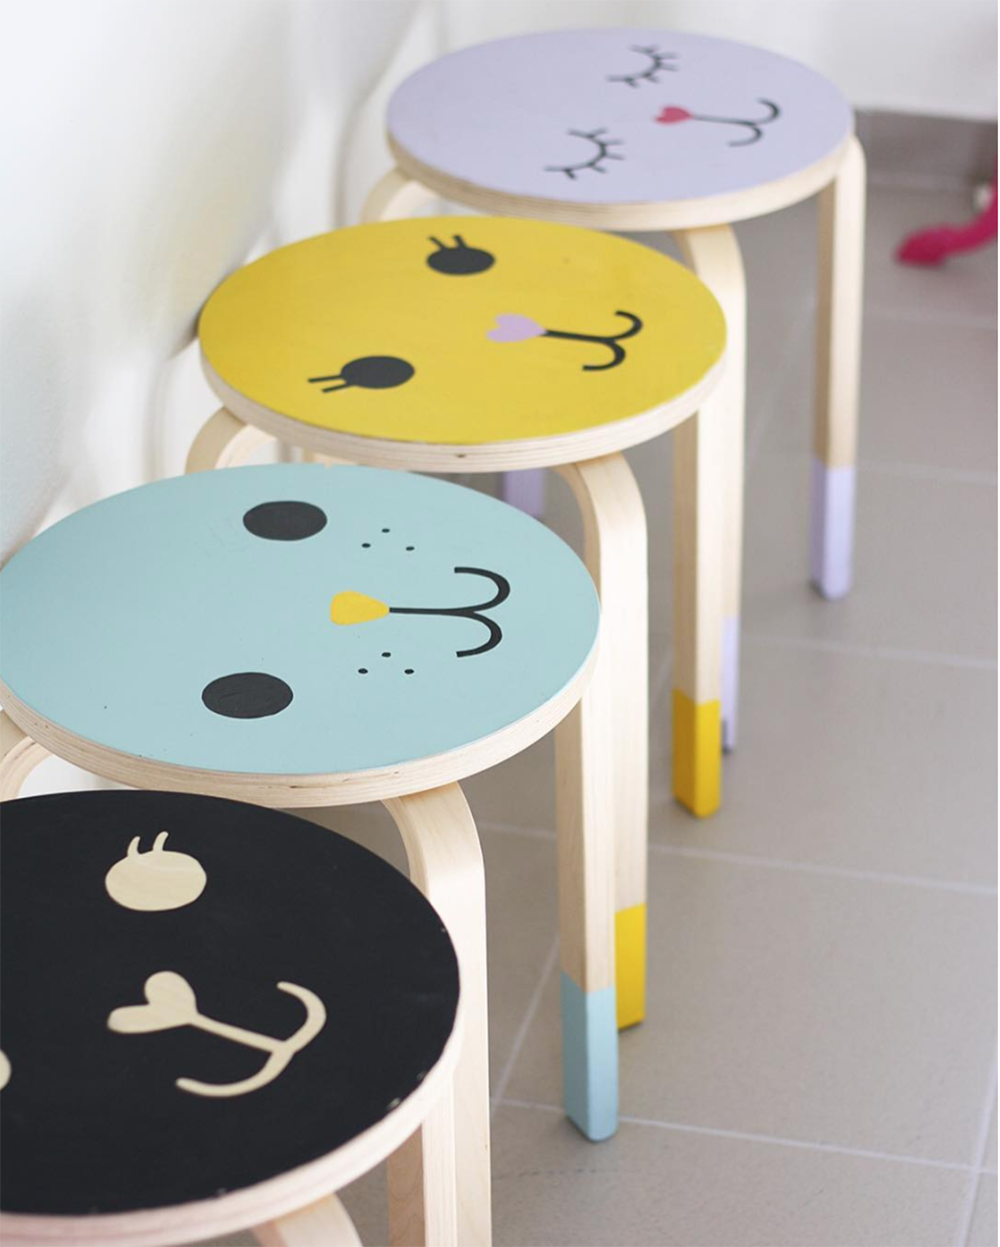 12x coole IKEA Hacks voor in de kinderkamer